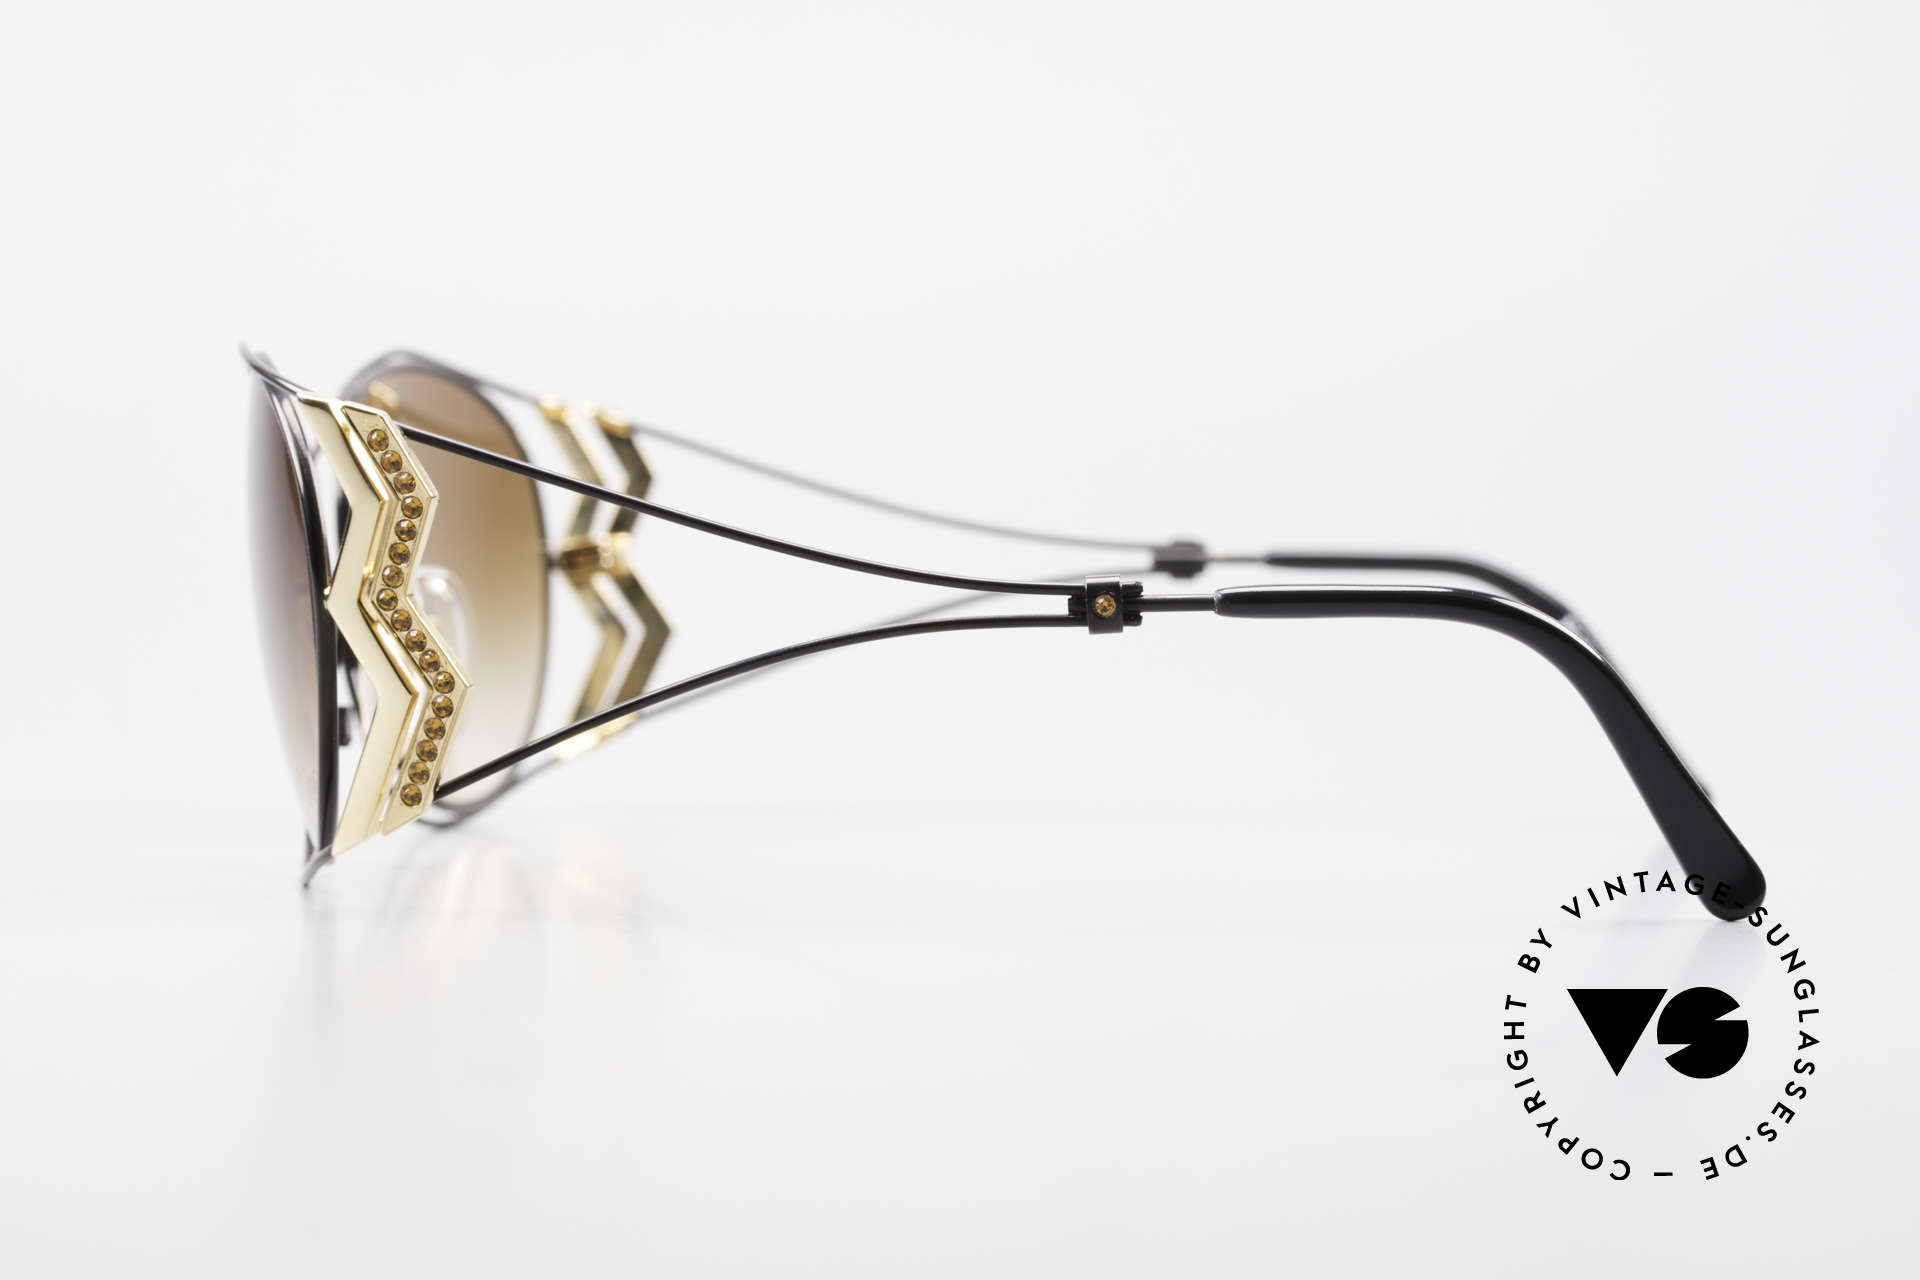 Paloma Picasso 3707 90s Ladies Shades Rhinestones, gentrified metal frame with shiny rhinestone appliqué, Made for Women